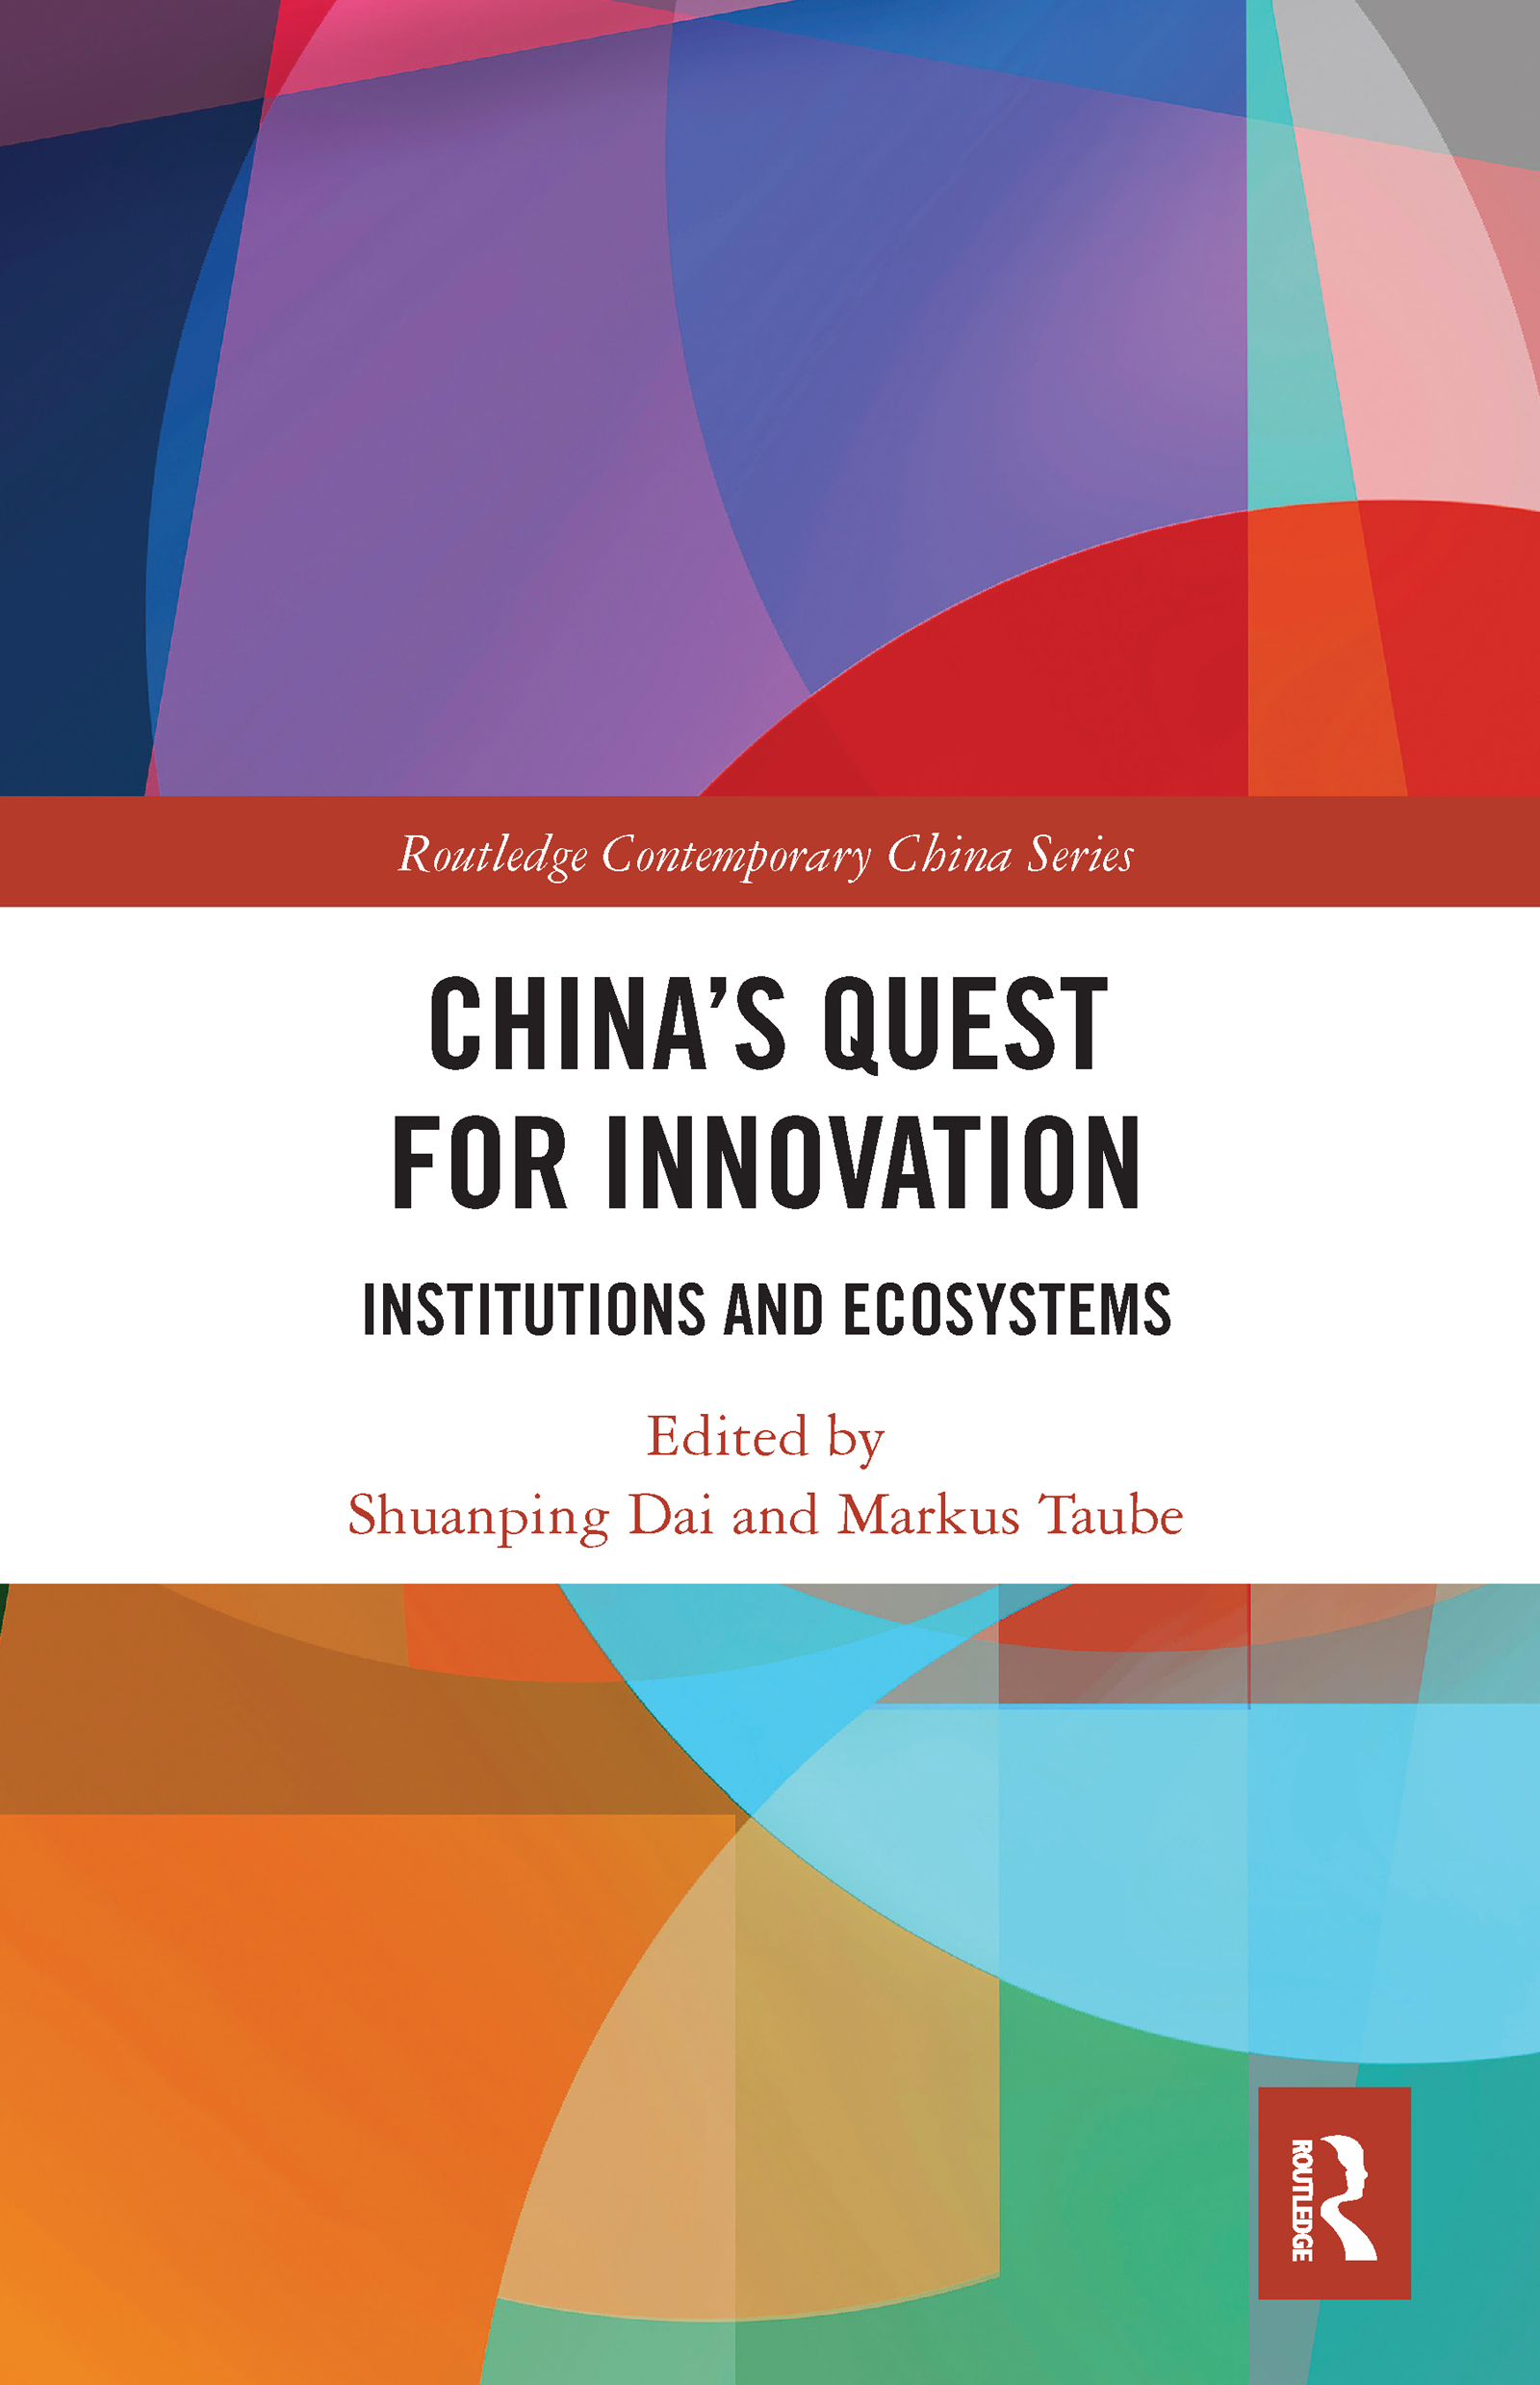 China's Quest for Innovation